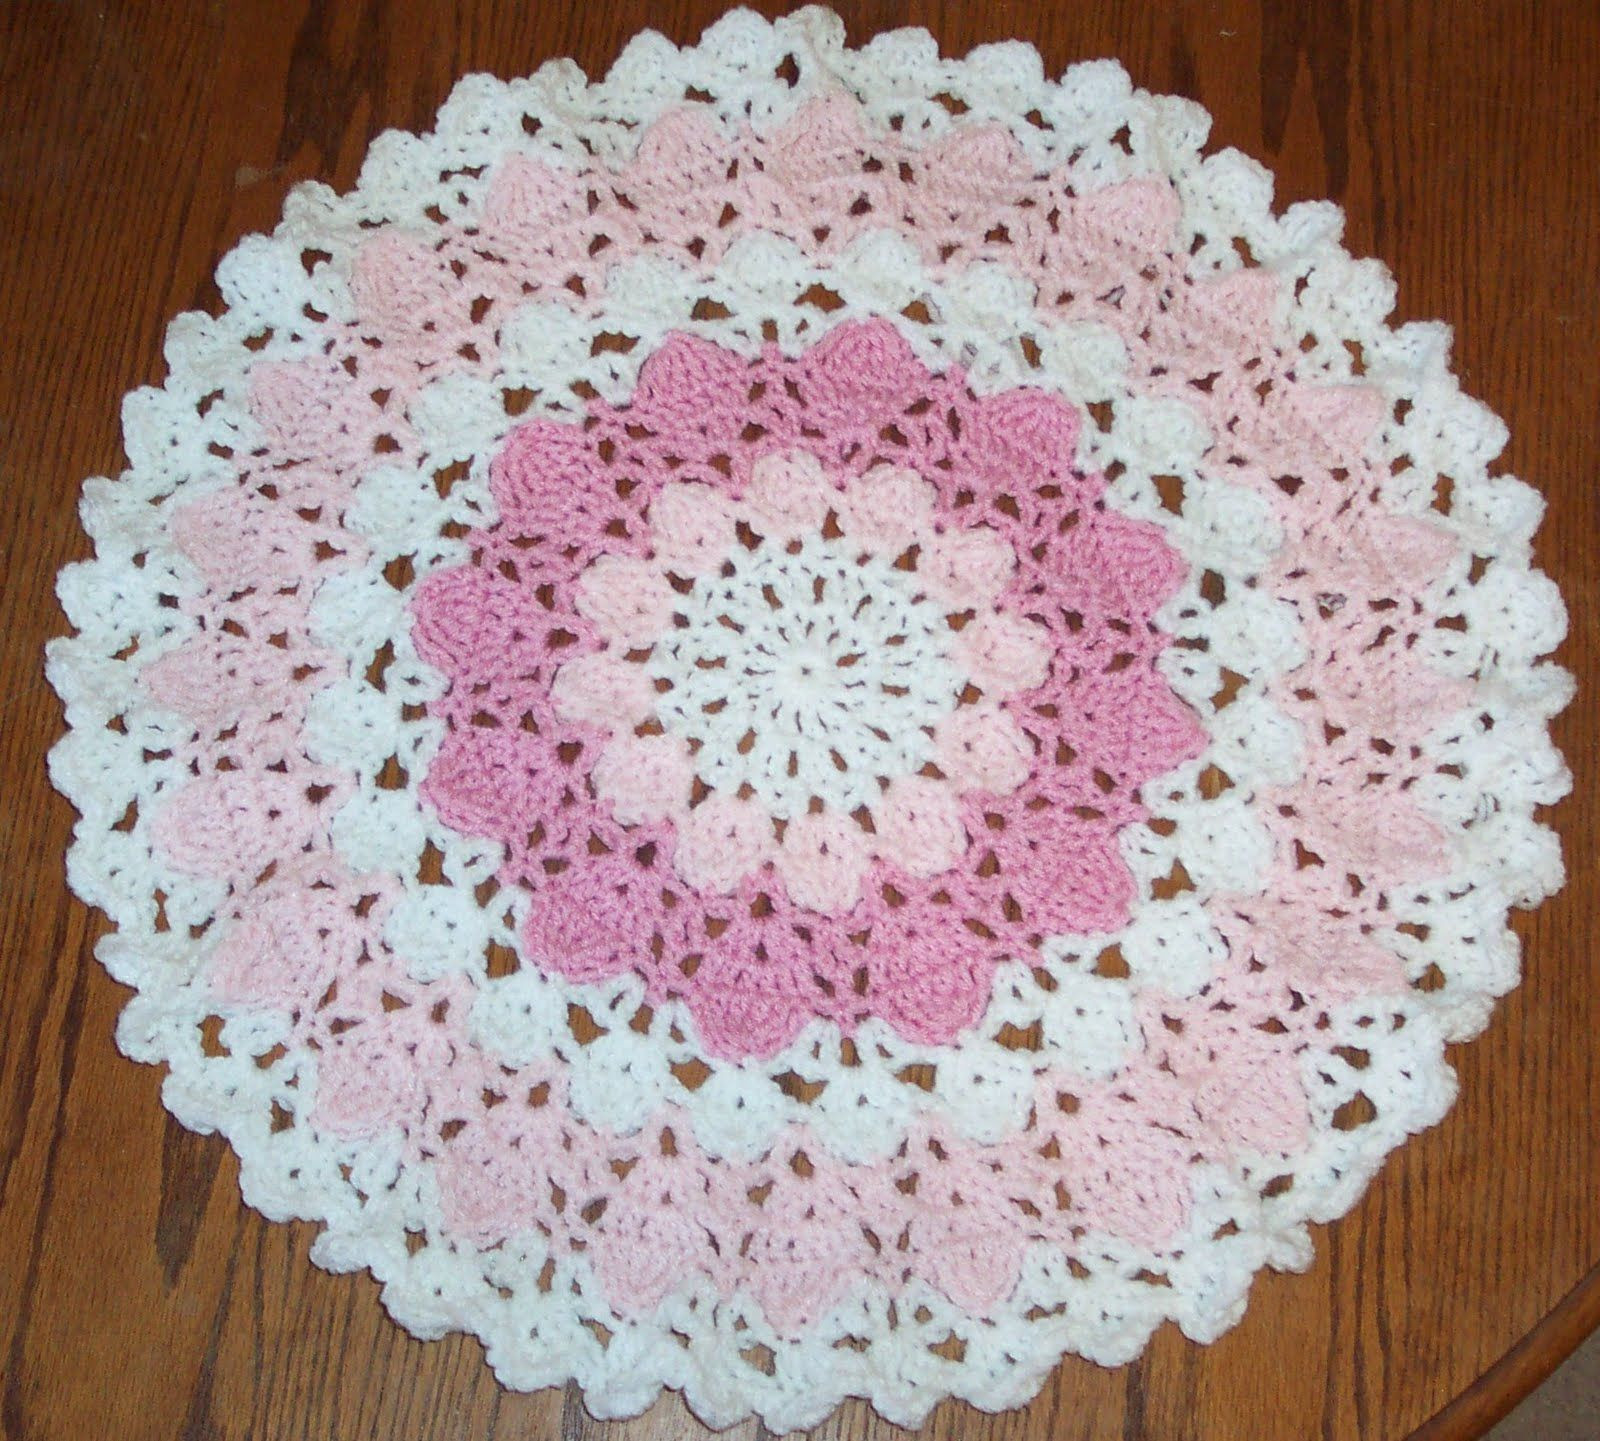 Easy Crochet Doily Patterns Lovely Easy Crochet Doily for Beginners Of Adorable 43 Pictures Easy Crochet Doily Patterns